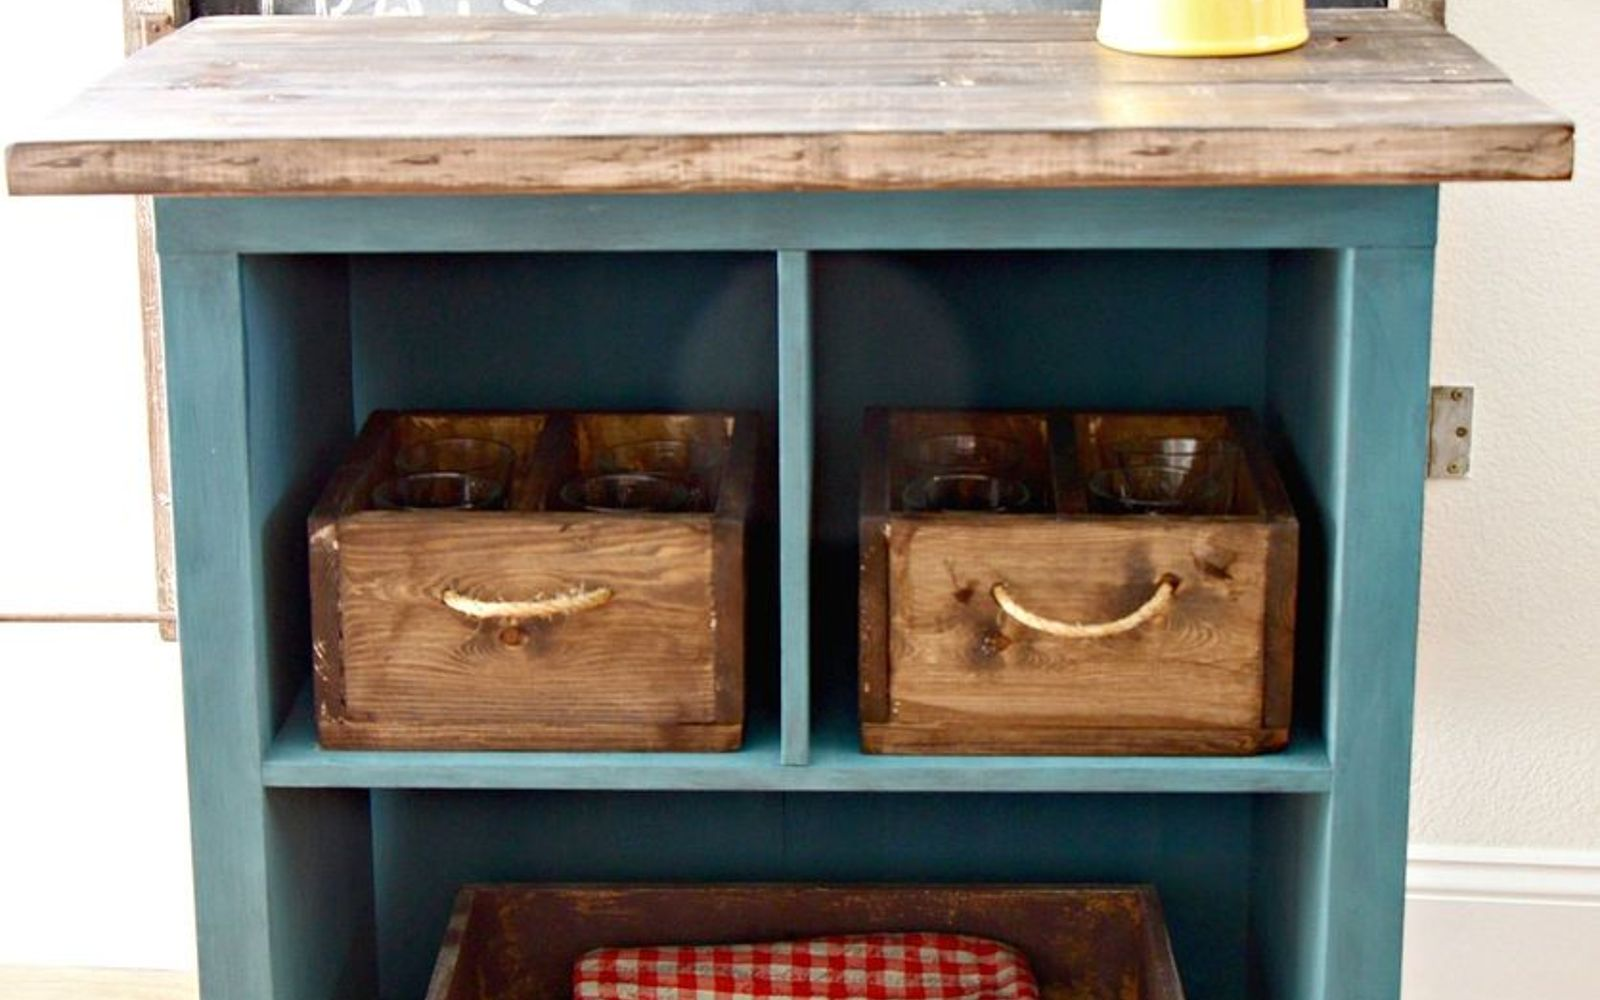 19 incredible kitchen islands made from totally unexpected things